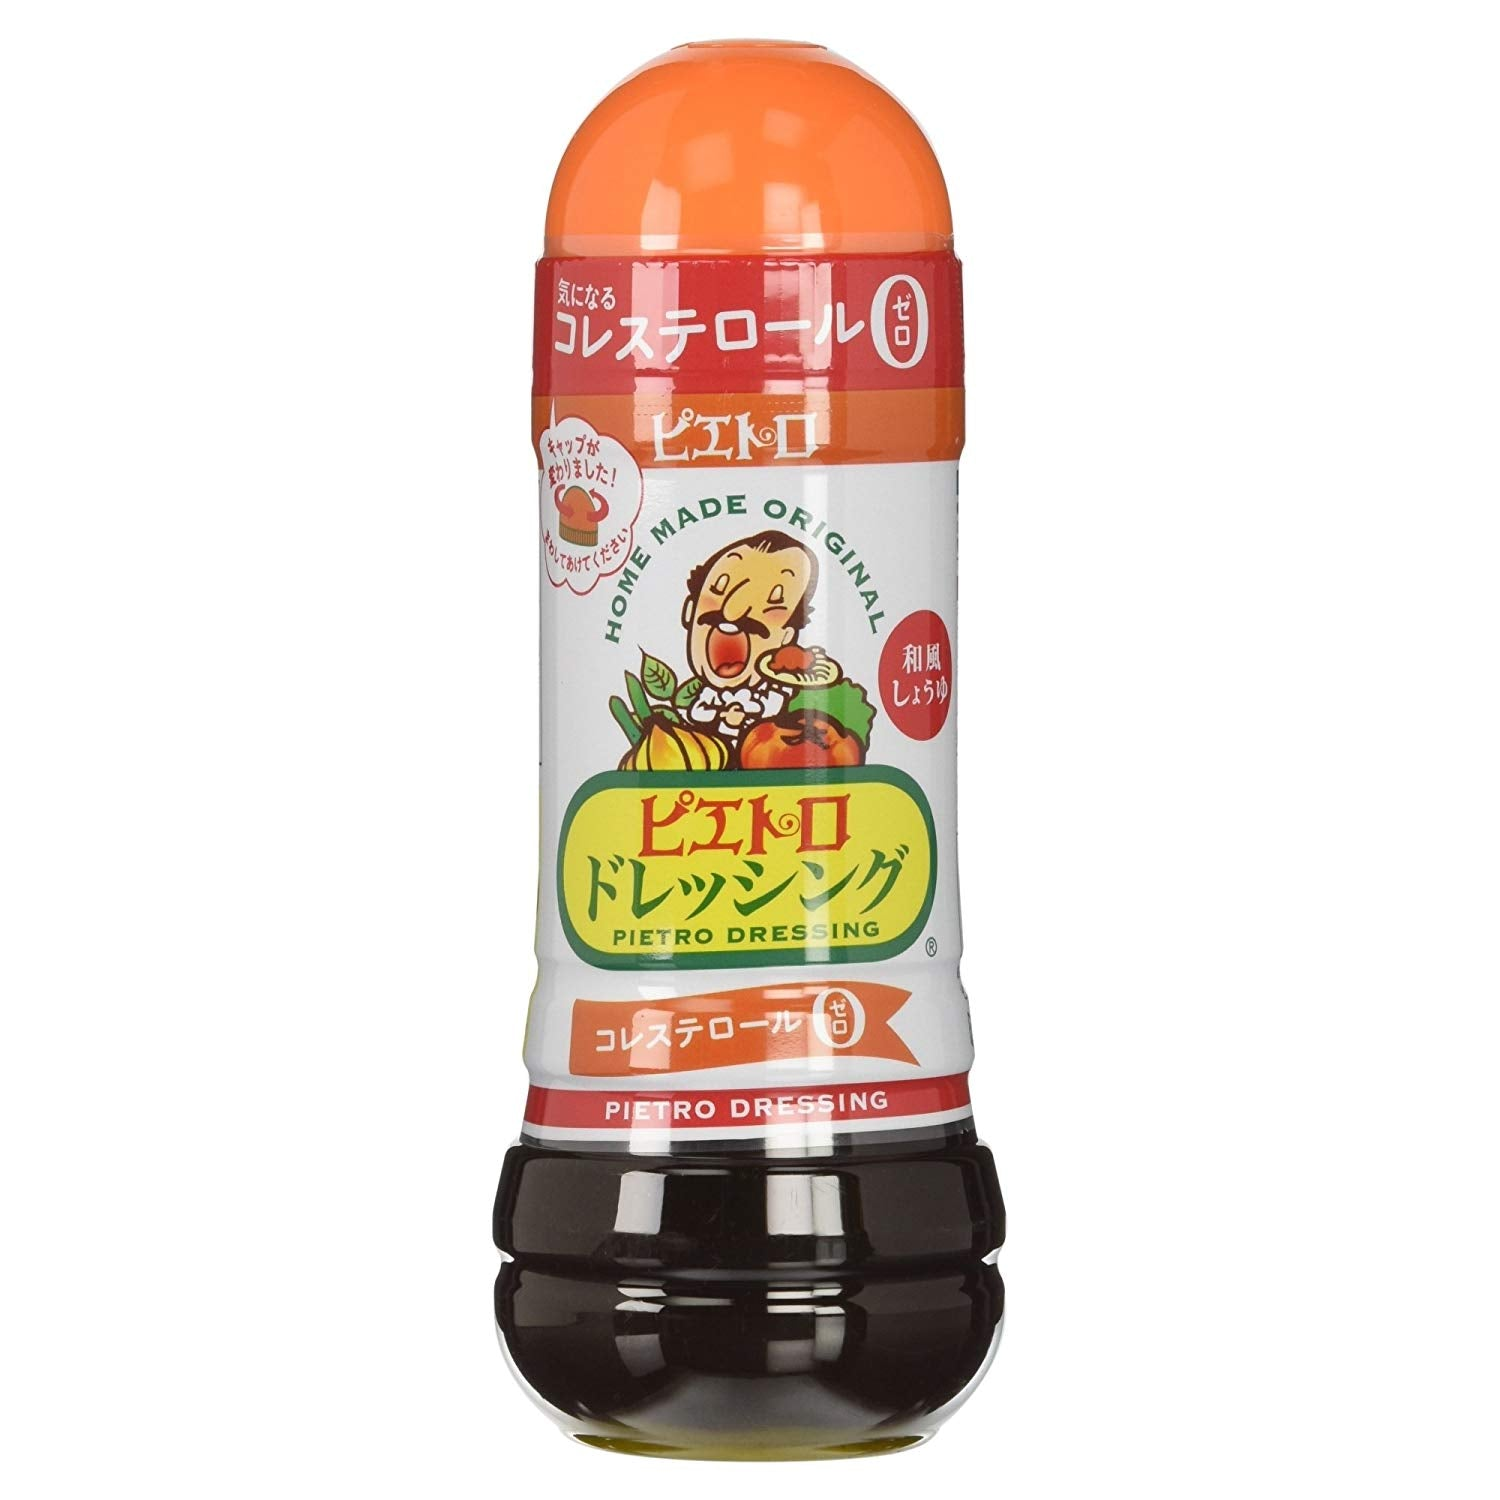 Pietro dressing Japanese style soy sauce 280ml